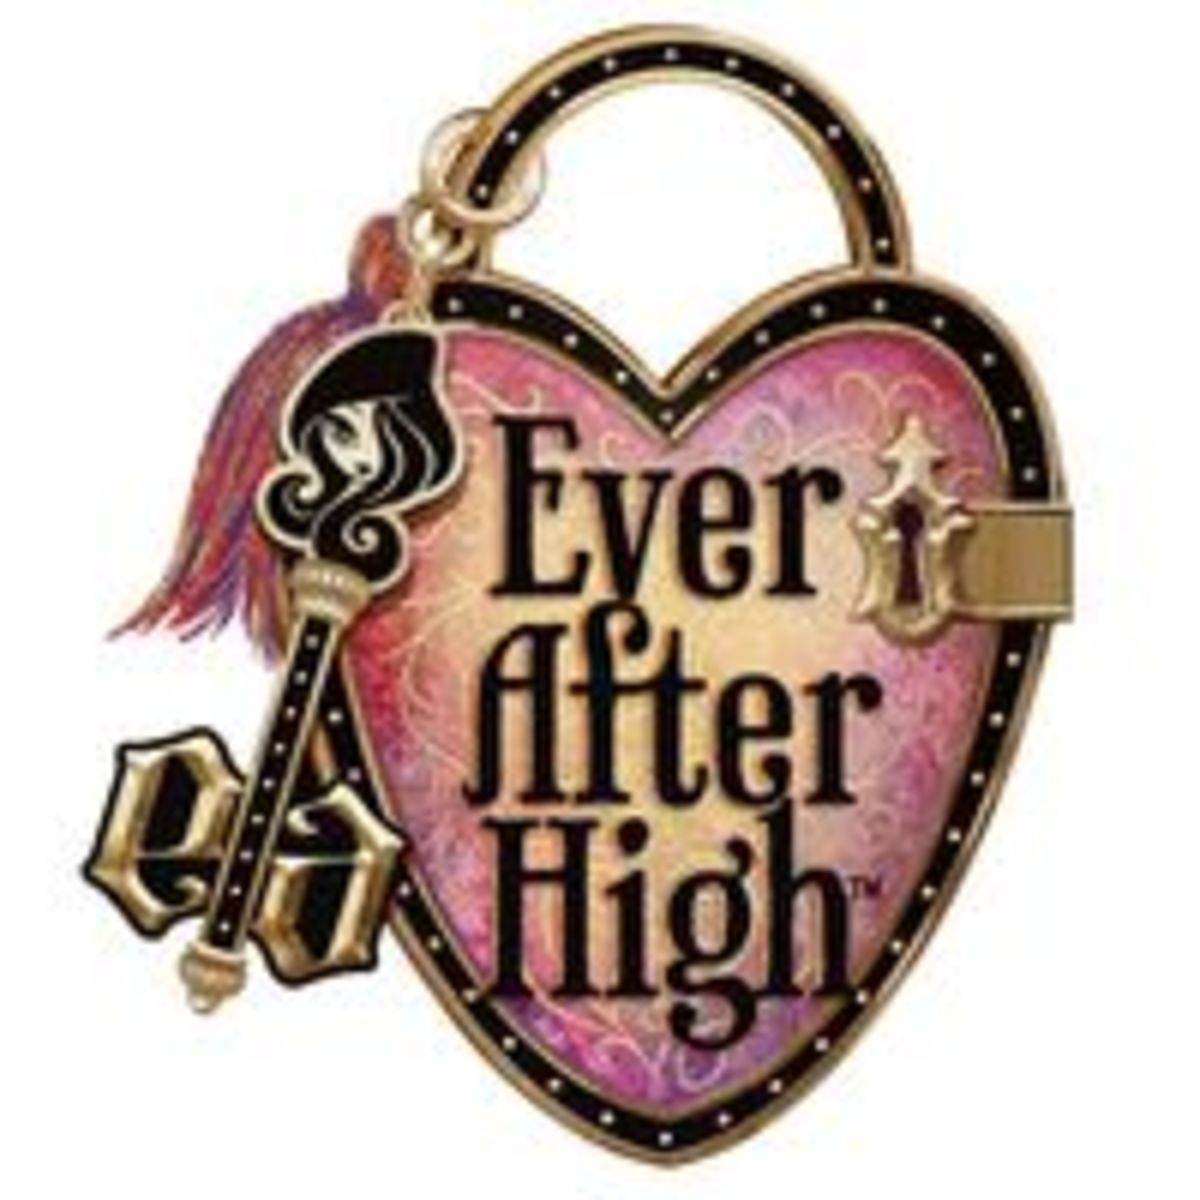 The main logo of Ever After High.